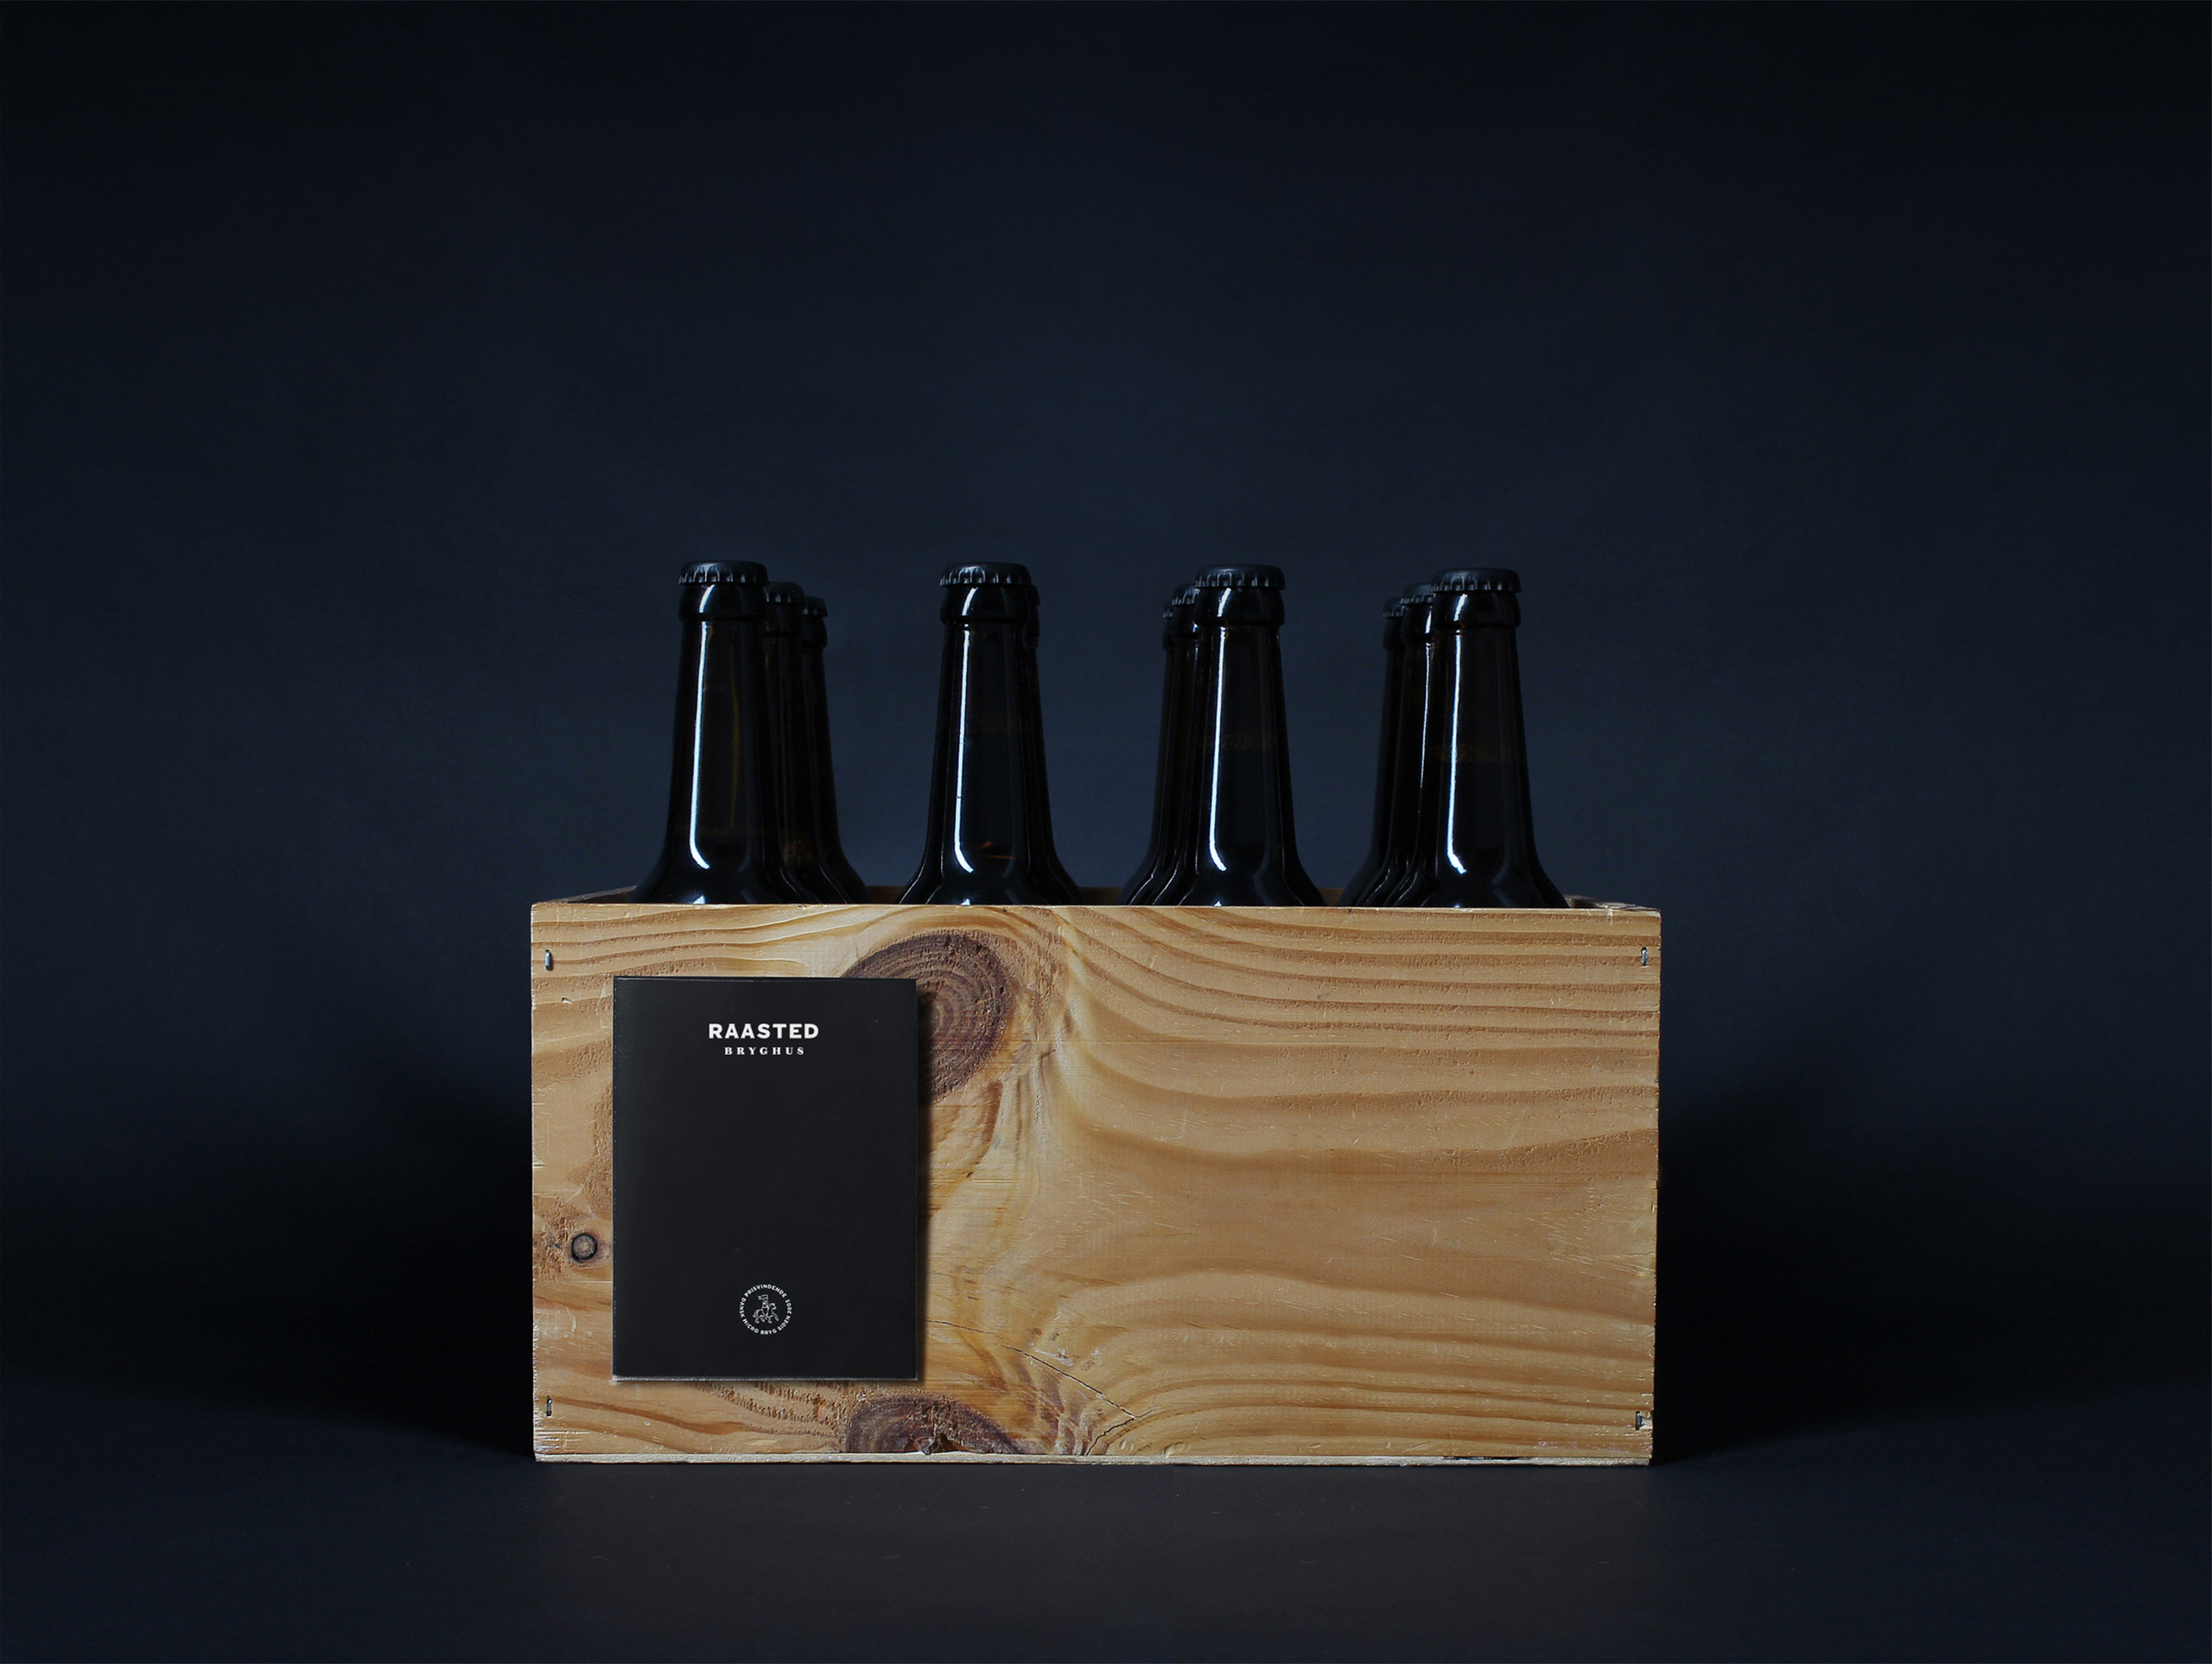 RAASTED — The shape of beer